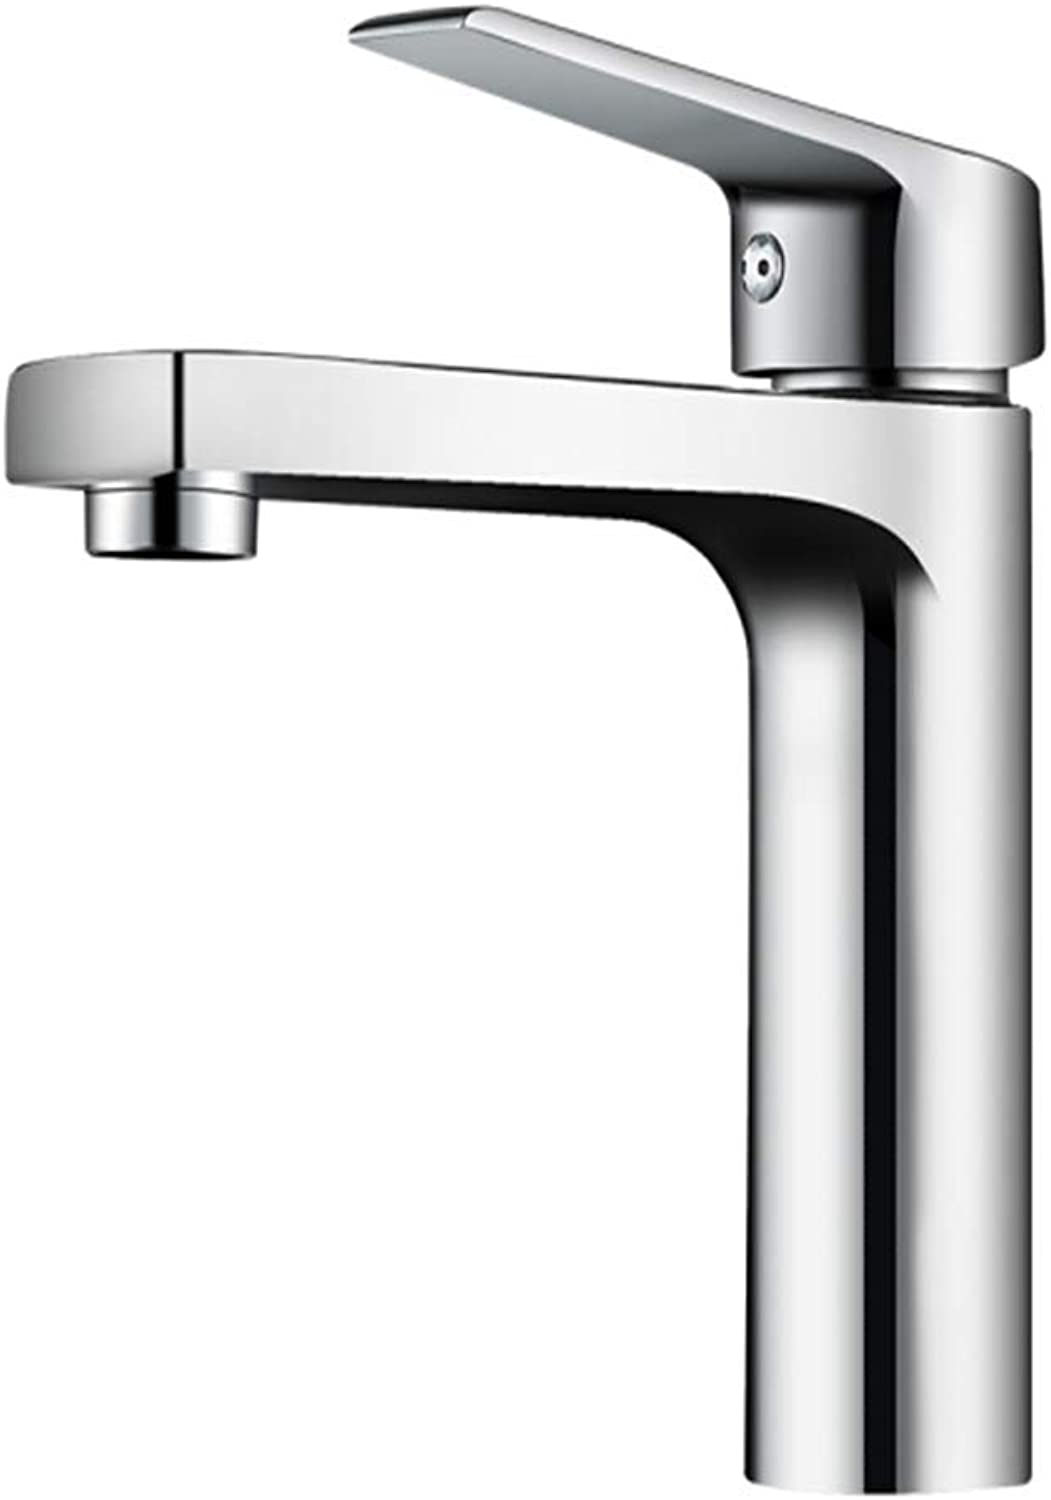 Kitchen Taps Faucet Modern Kitchen Sink Taps Stainless Steelcopper Main Basin Faucet Washbasin Toilet Faucet